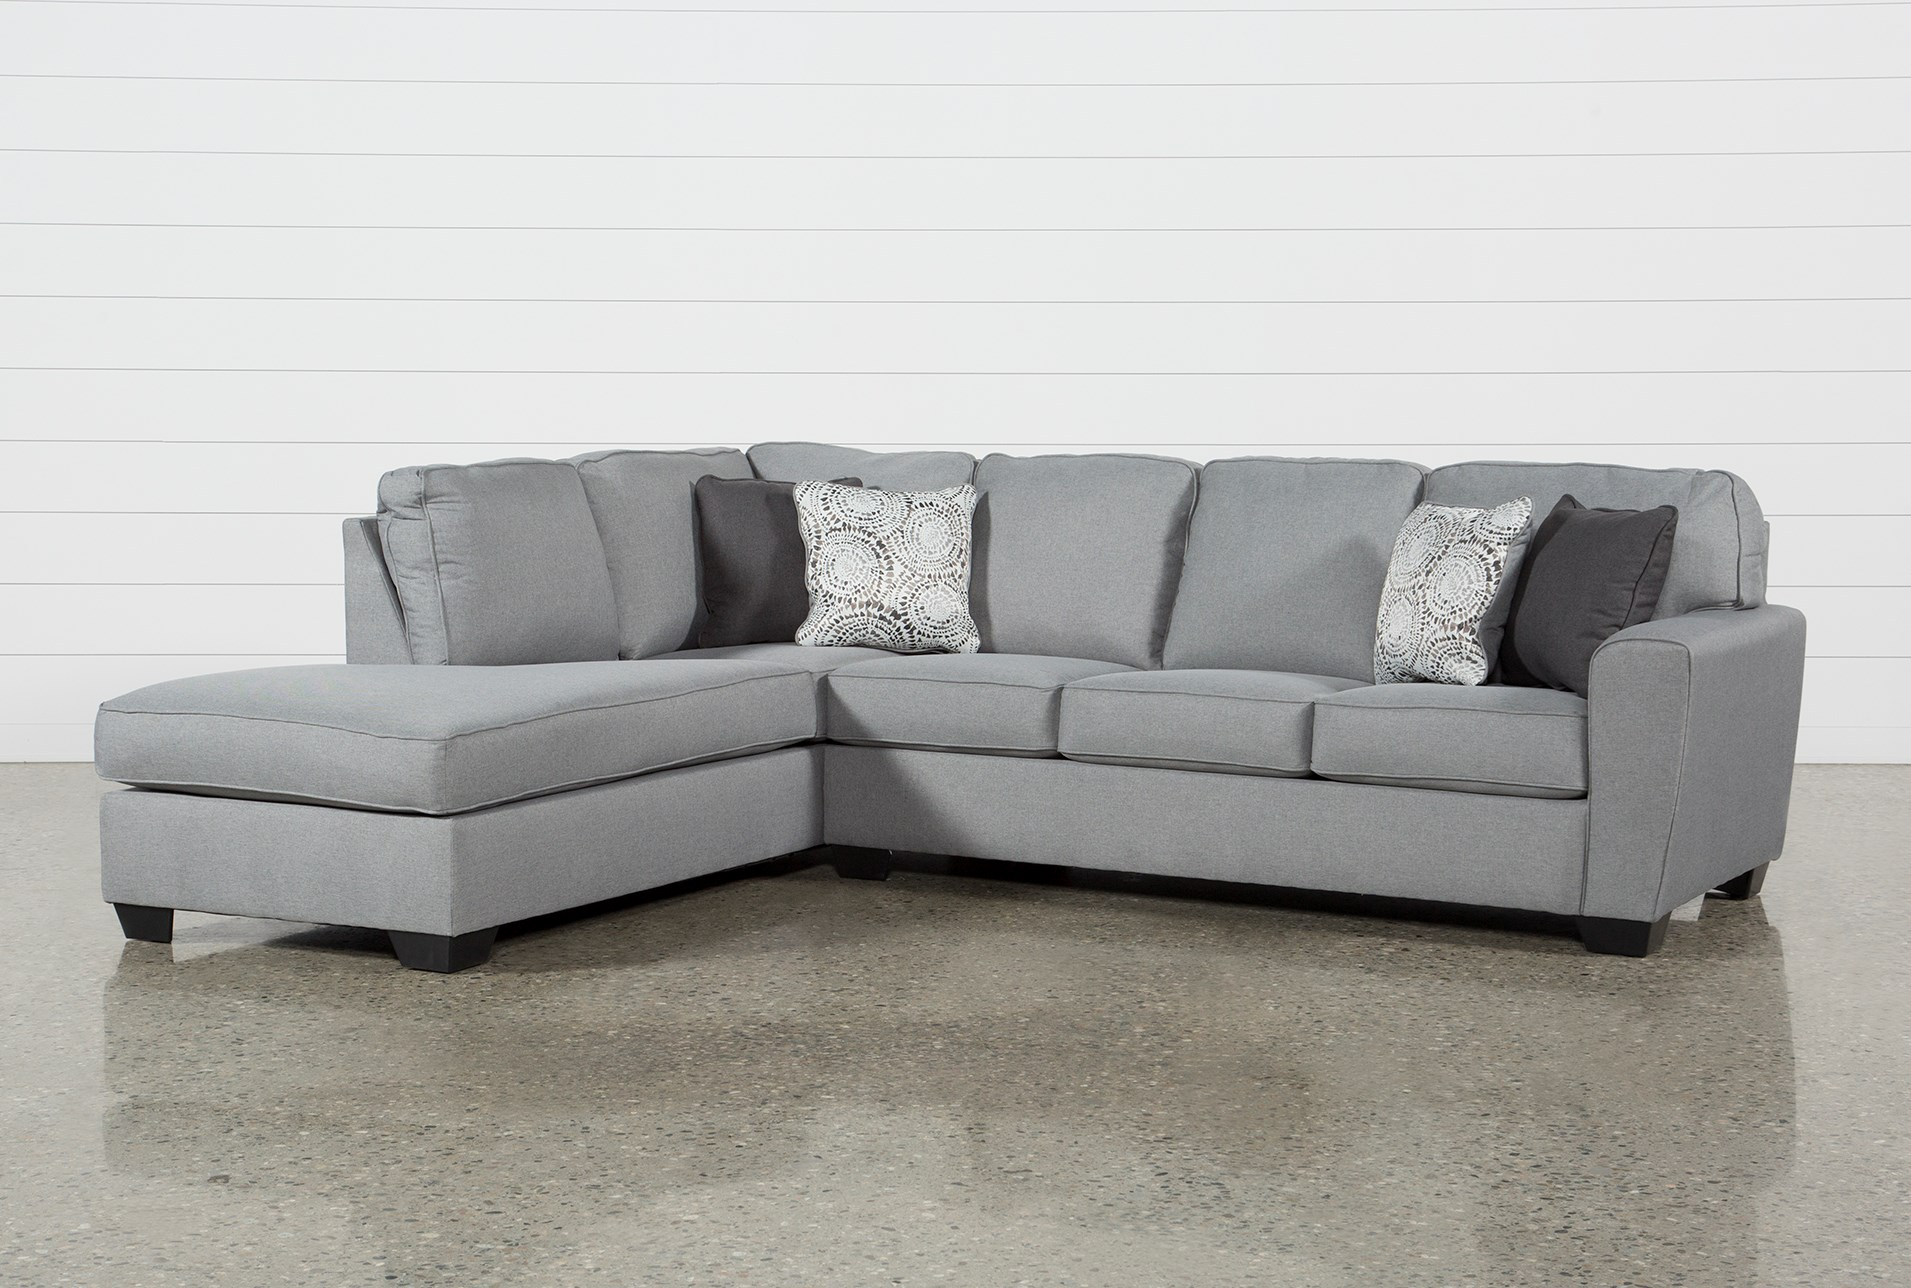 Mcdade Ash 2 Piece Sectional with Left Arm Facing Chaise | Living Spaces